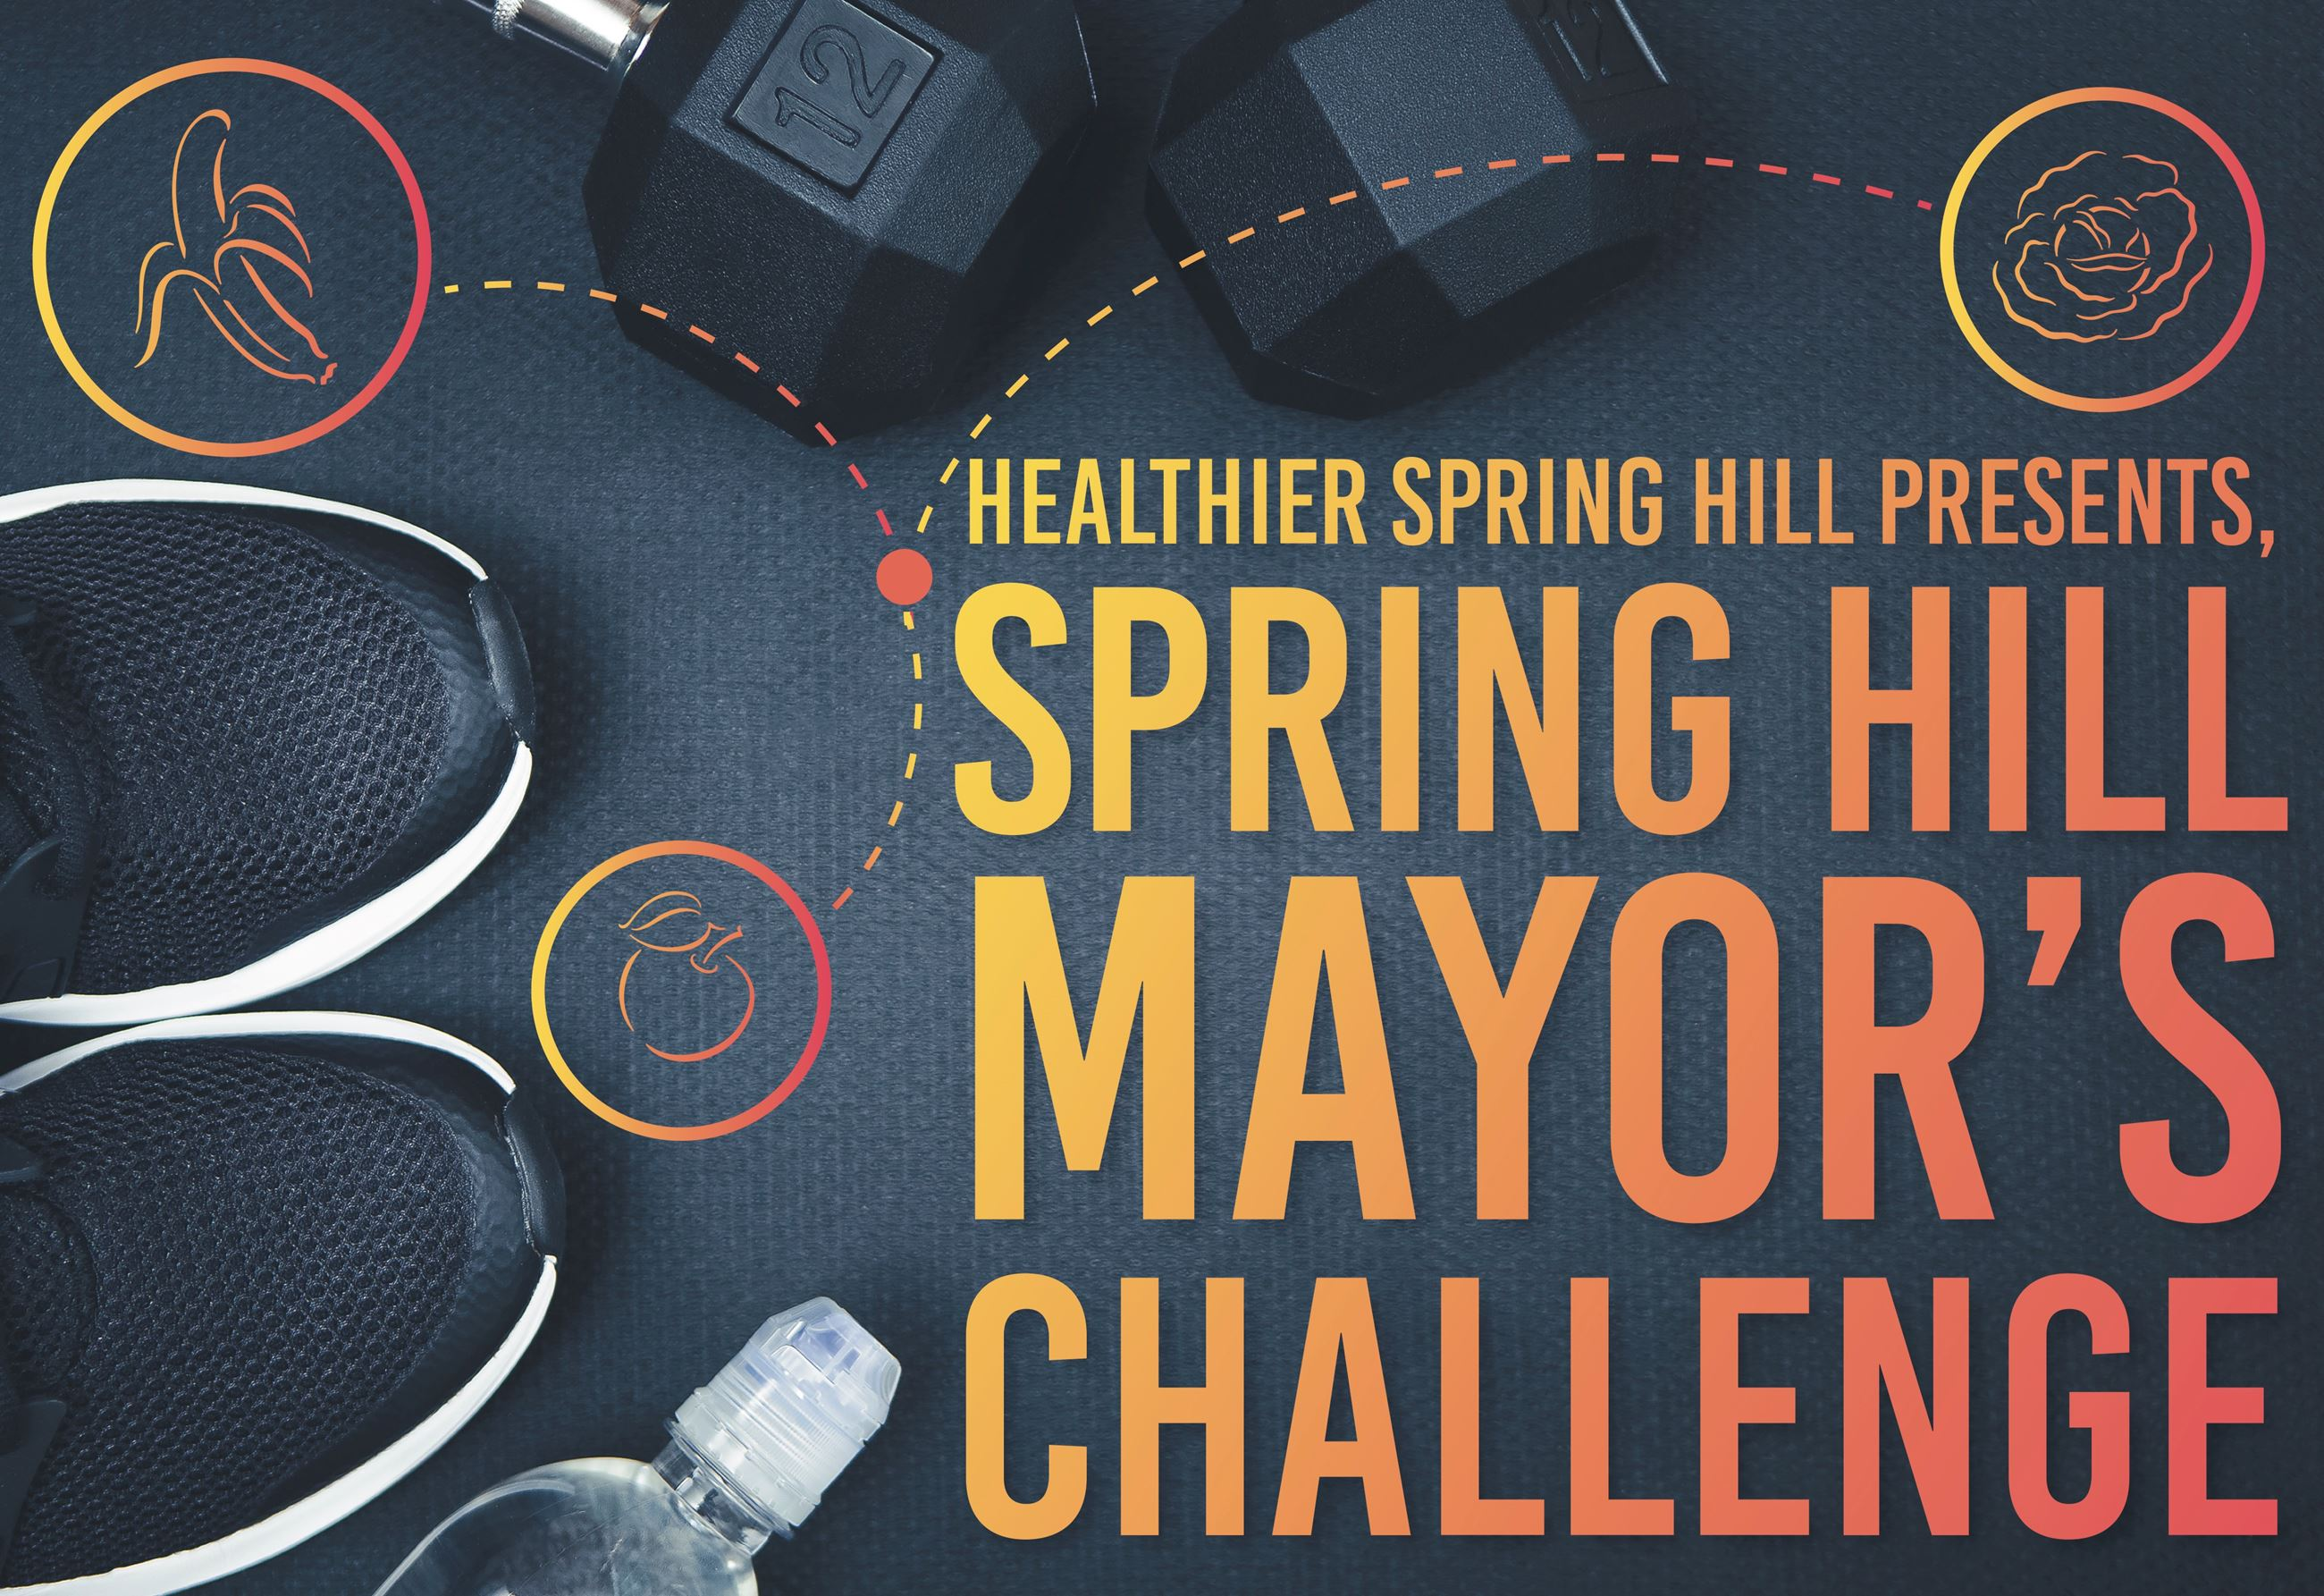 b7fb23491c9 2019 Spring Hill Mayor s Challenge kicks off Jan. 7